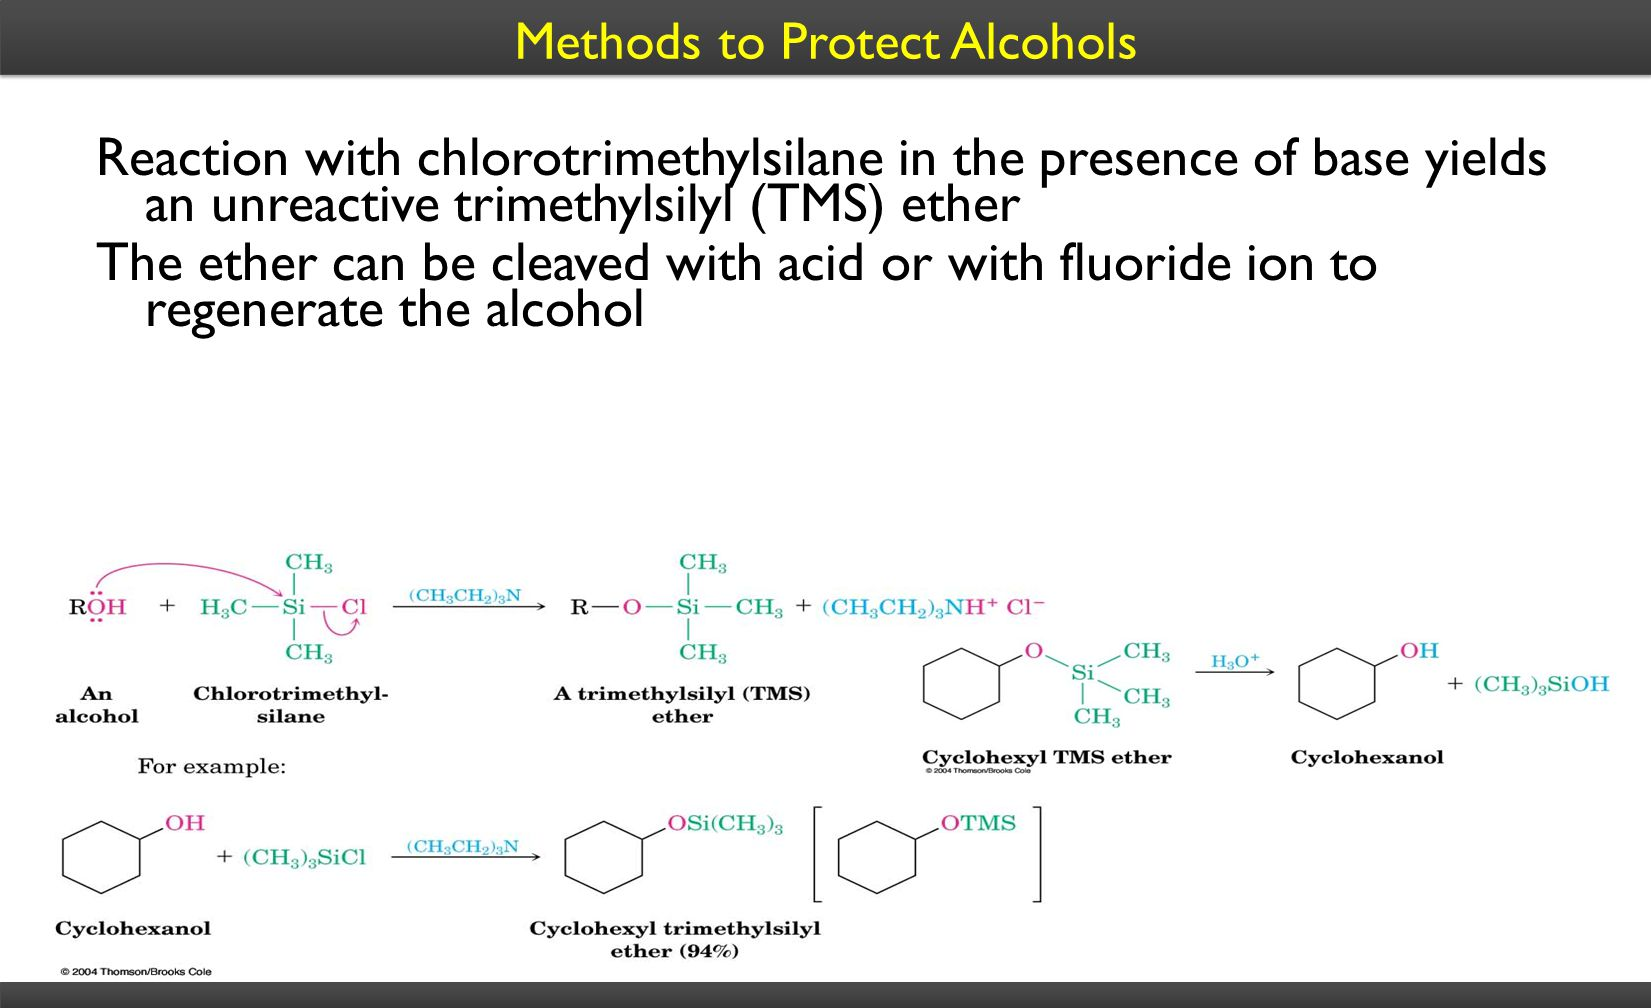 Methods to Protect Alcohols Reaction with chlorotrimethylsilane in the presence of base yields an unreactive trimethylsilyl (TMS) ether The ether can